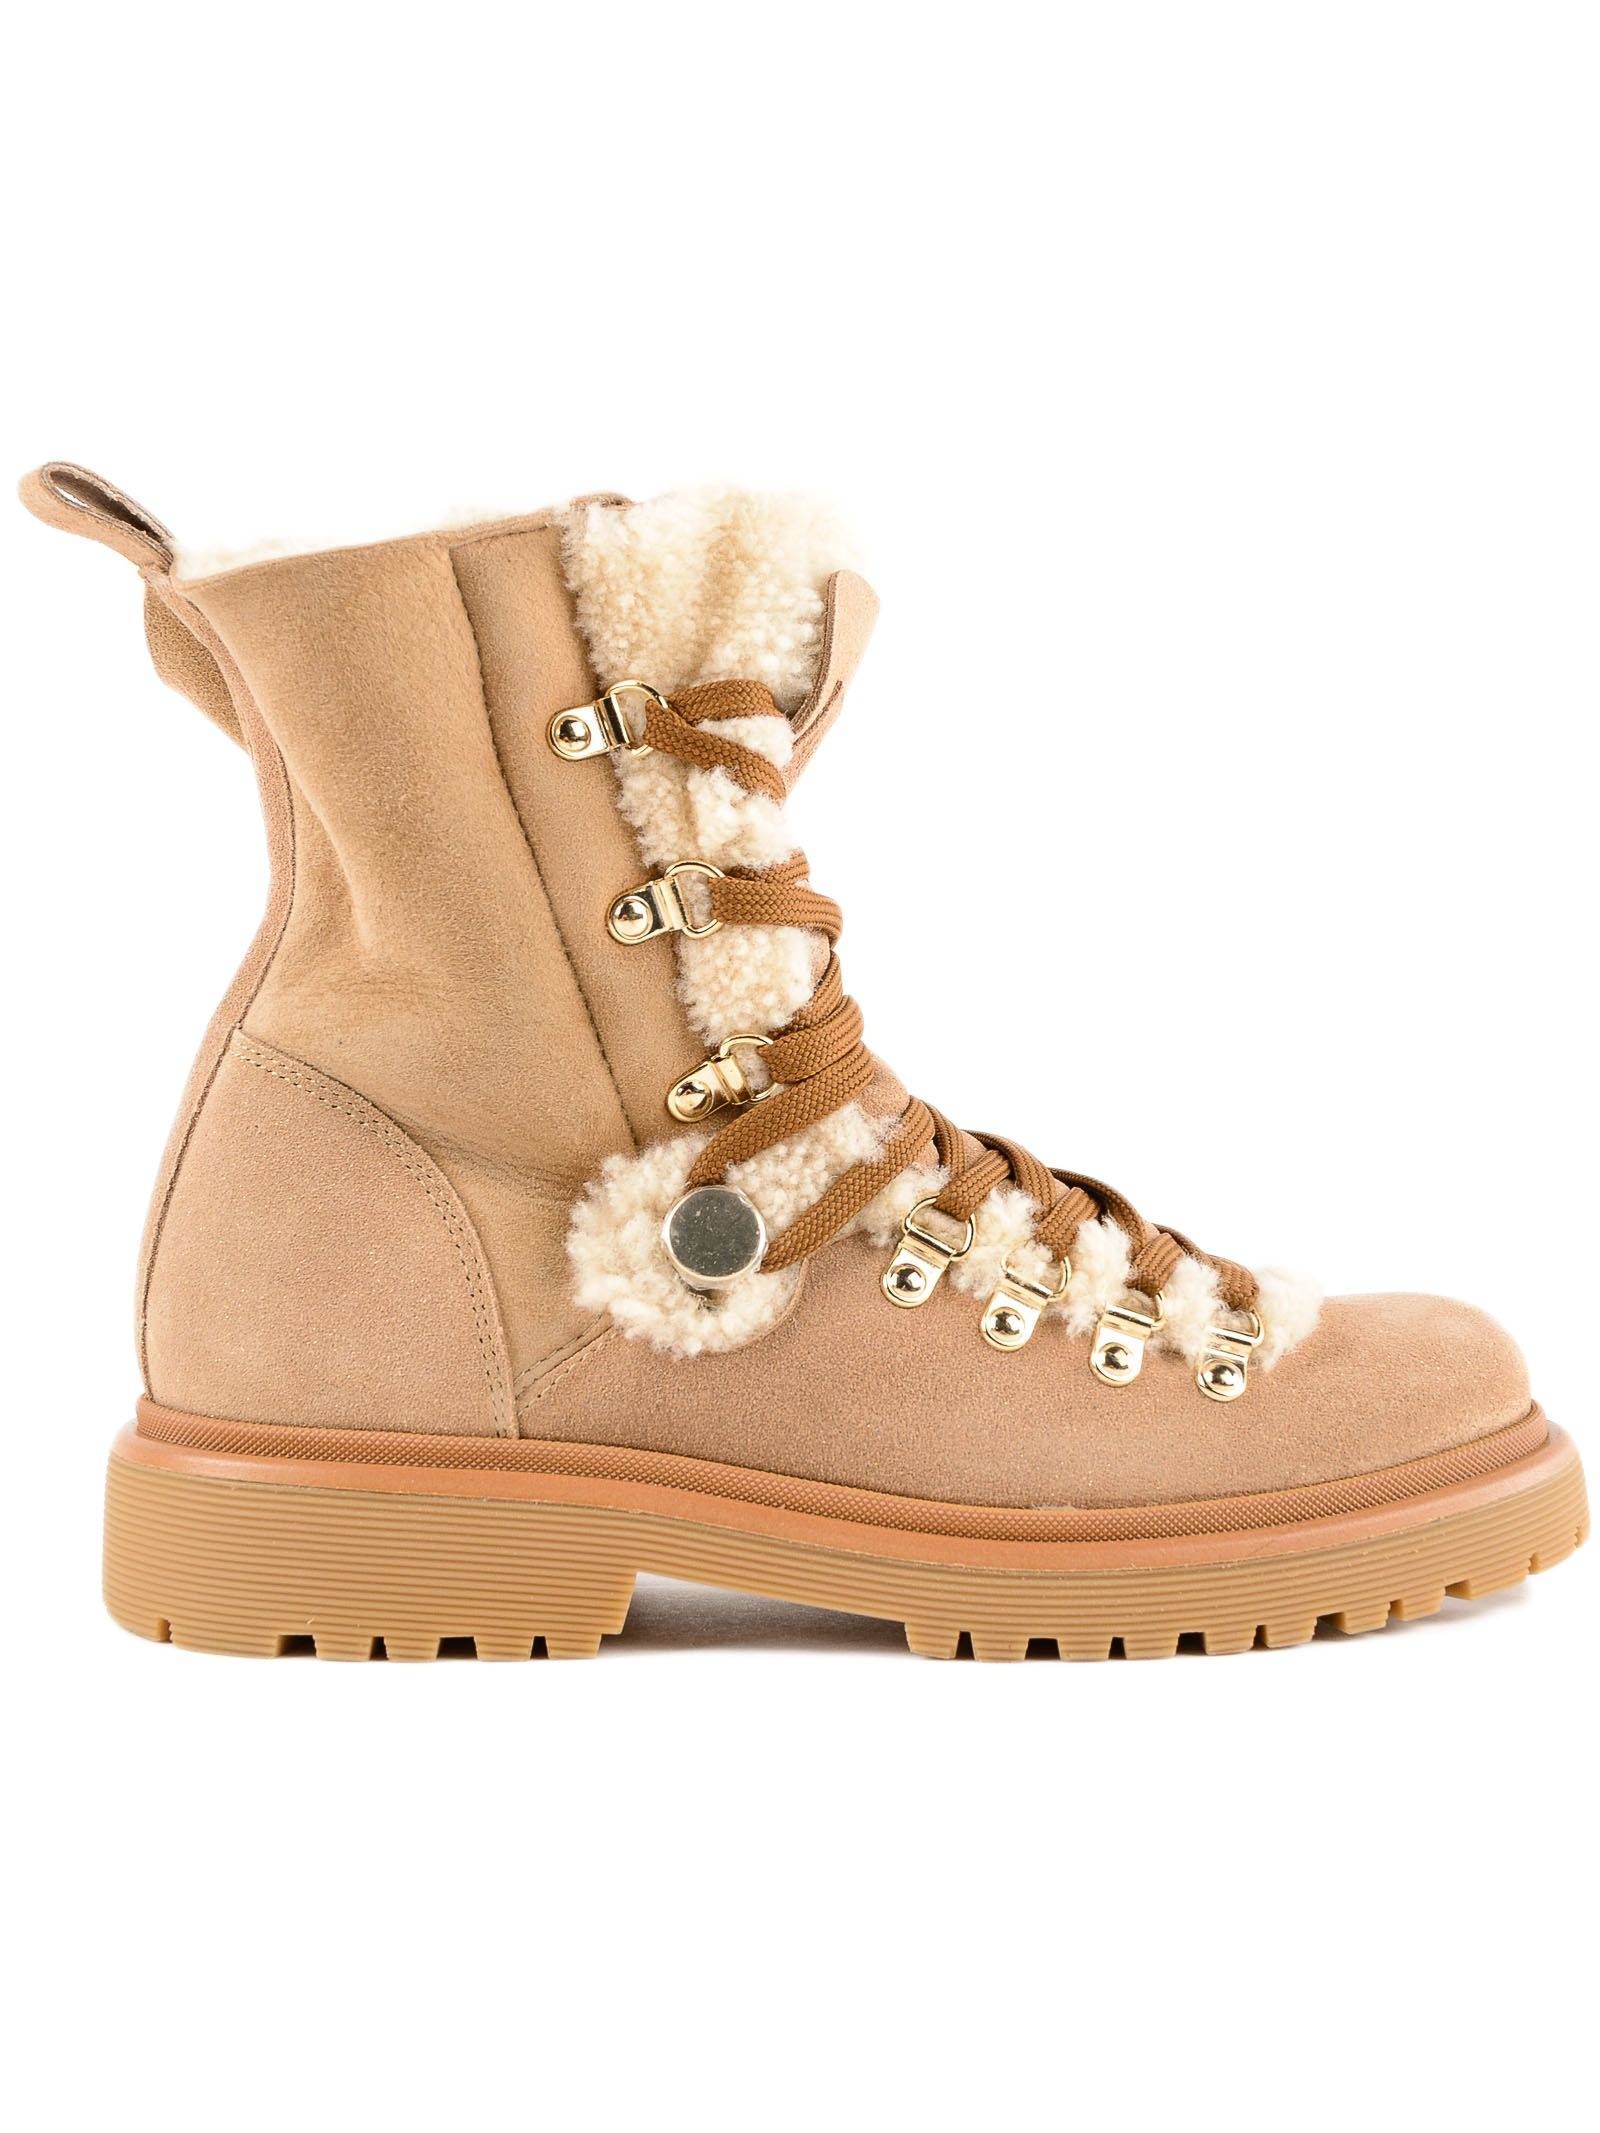 moncler -  Glitter Shearling Lined Hiking Boots